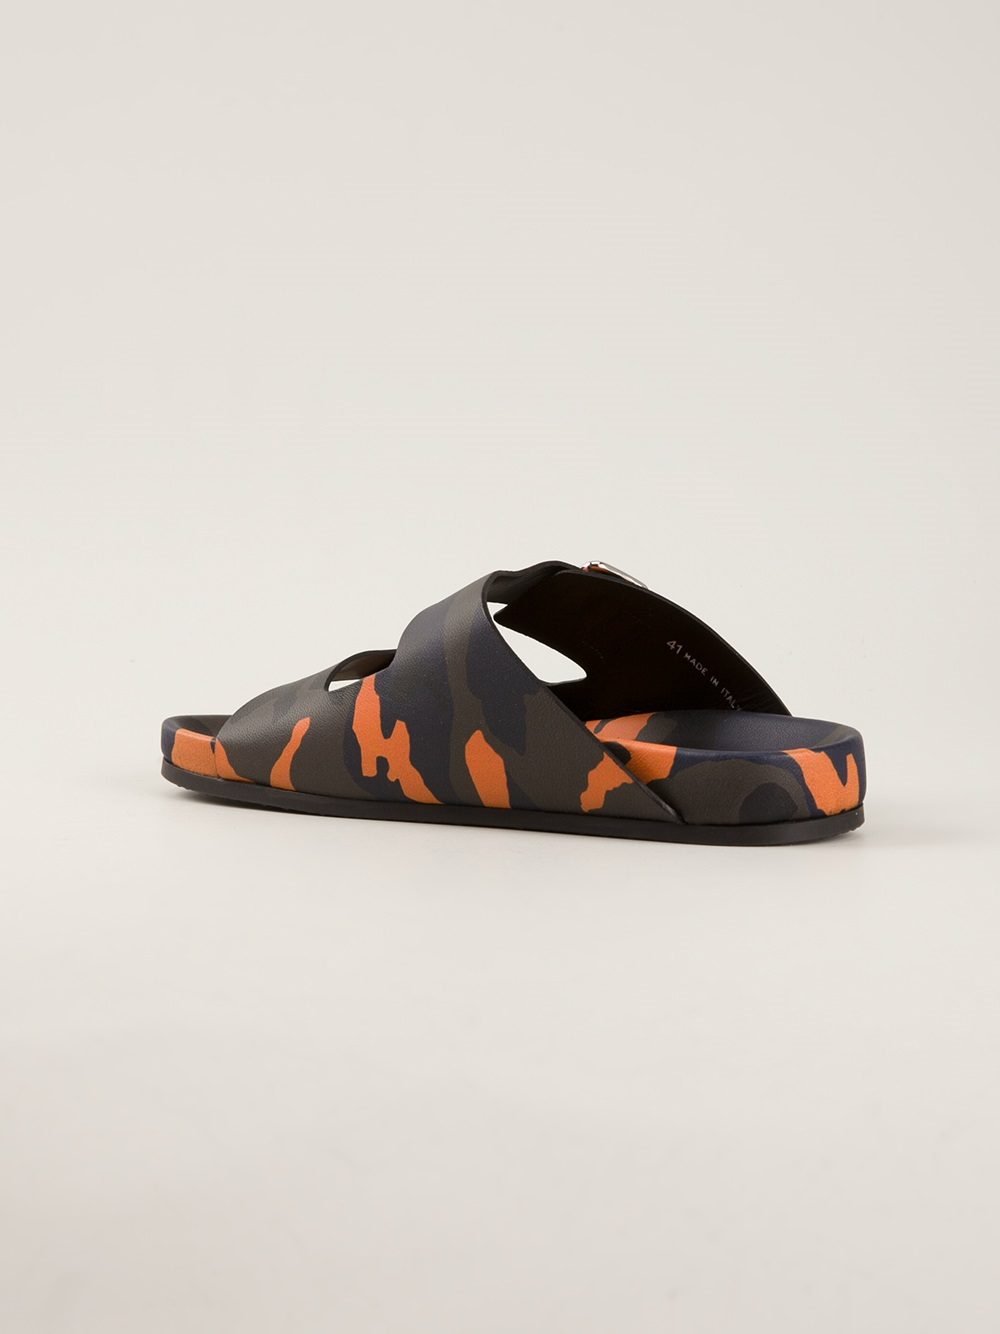 Lyst Givenchy Camouflage Print Sandal In Green For Men